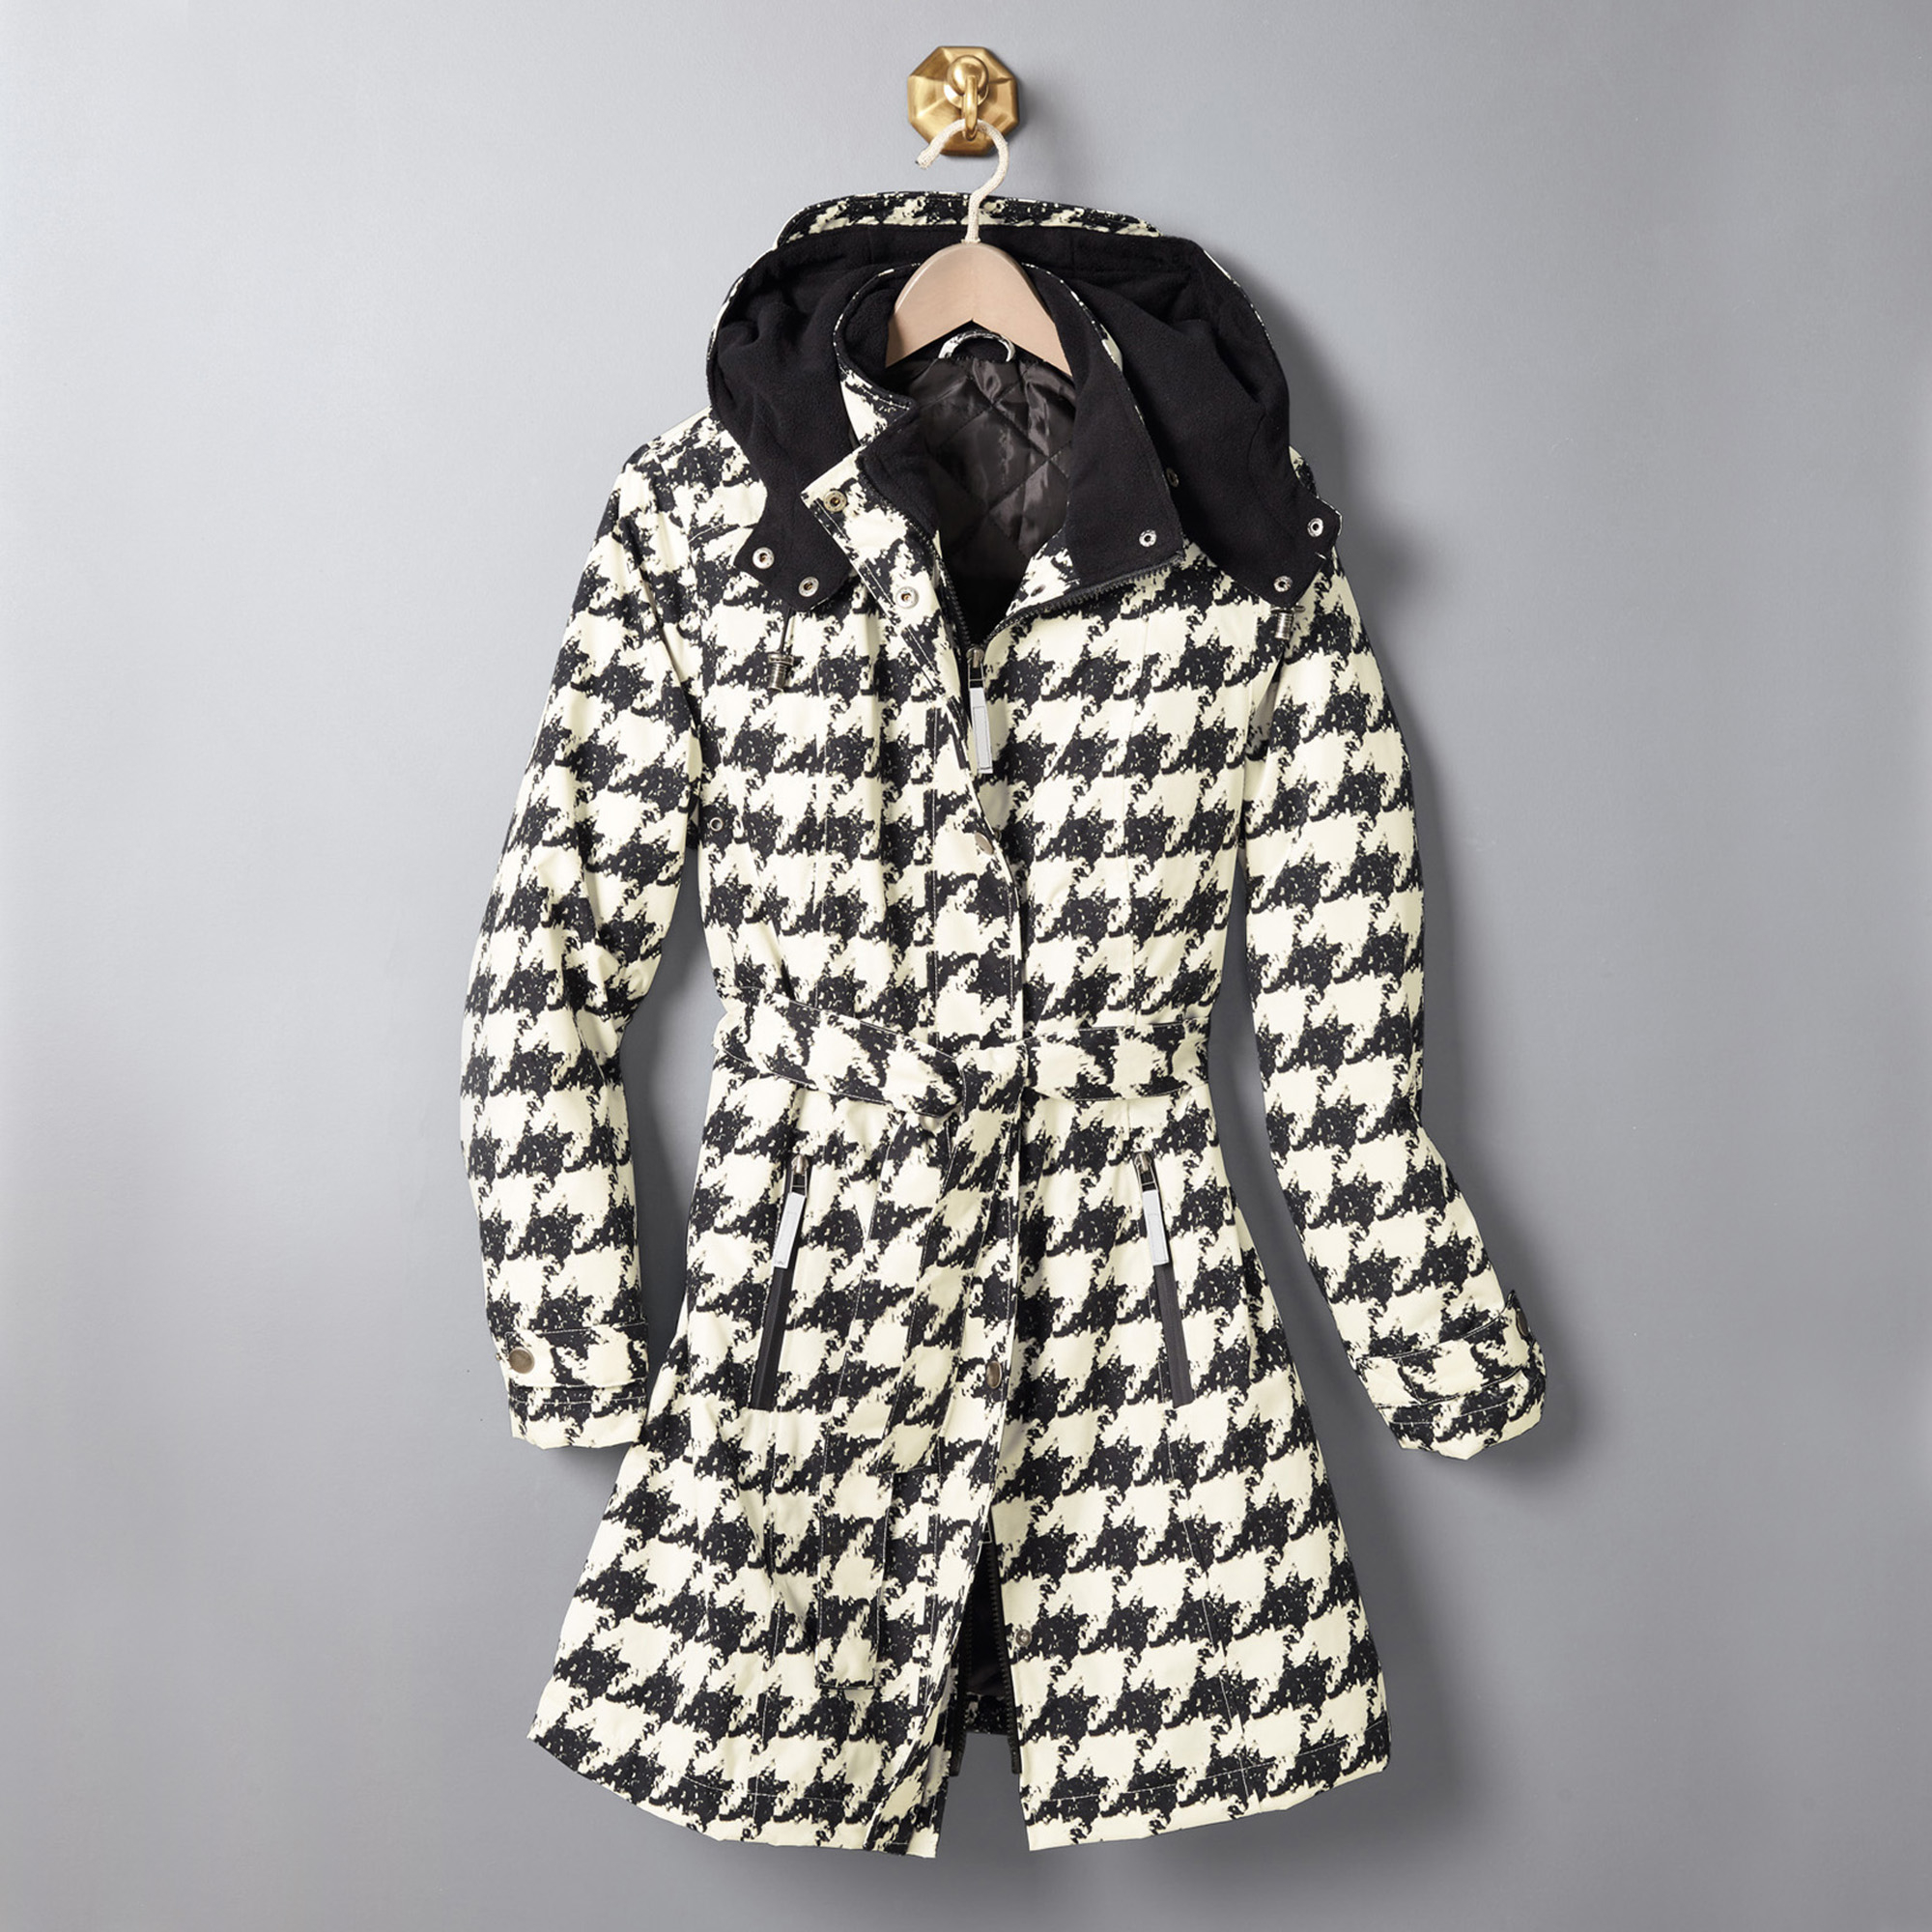 Houndstooth Raincoat